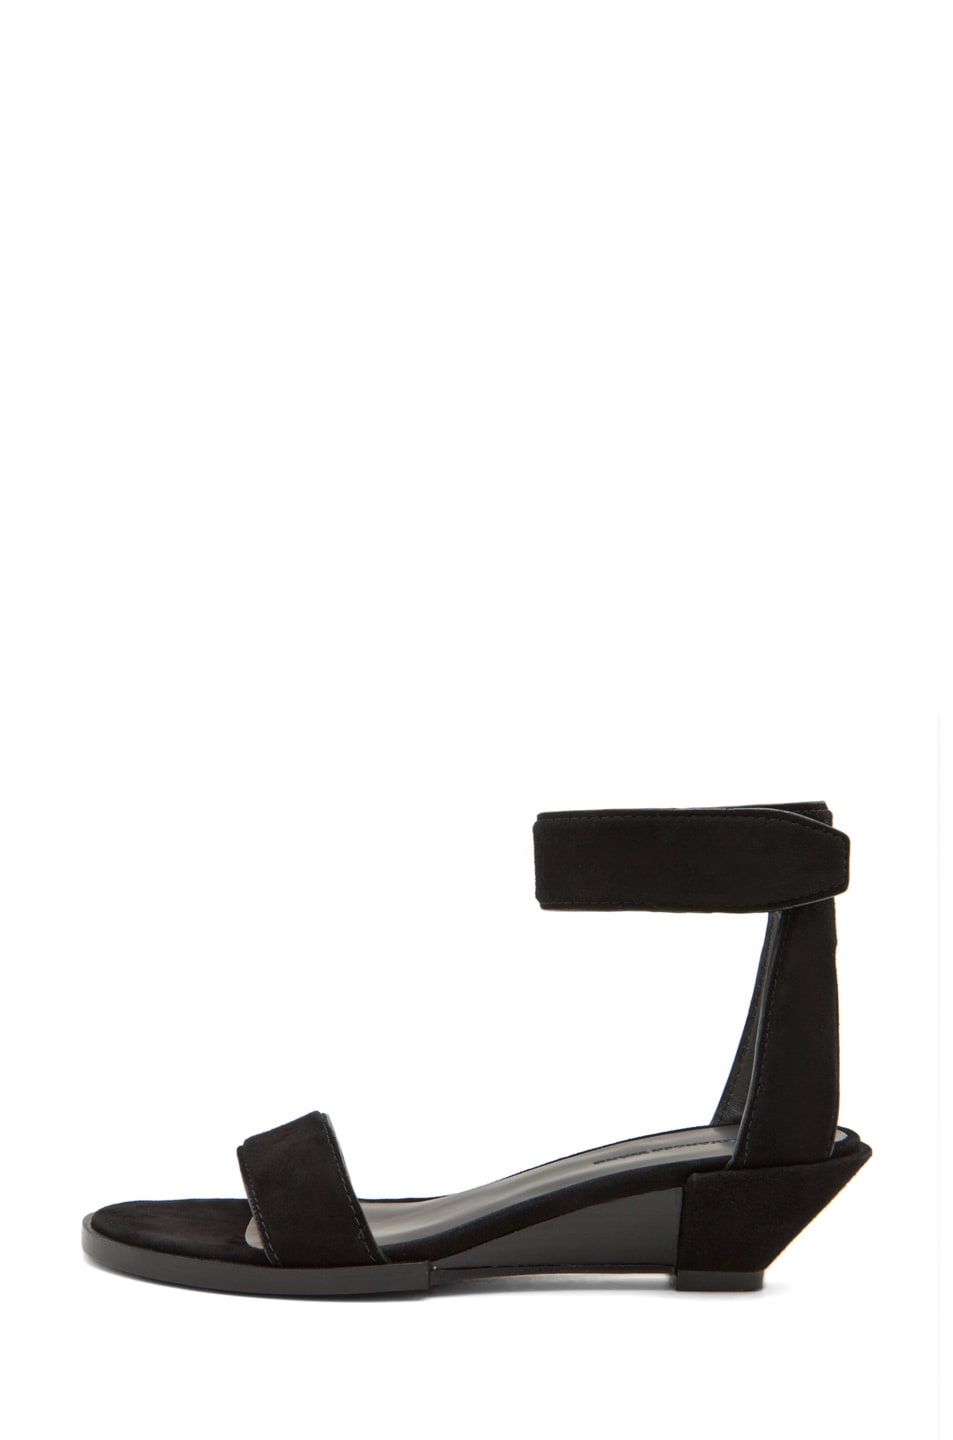 Image 1 of Alexander Wang Vika Wedge Sandal in Black Suede